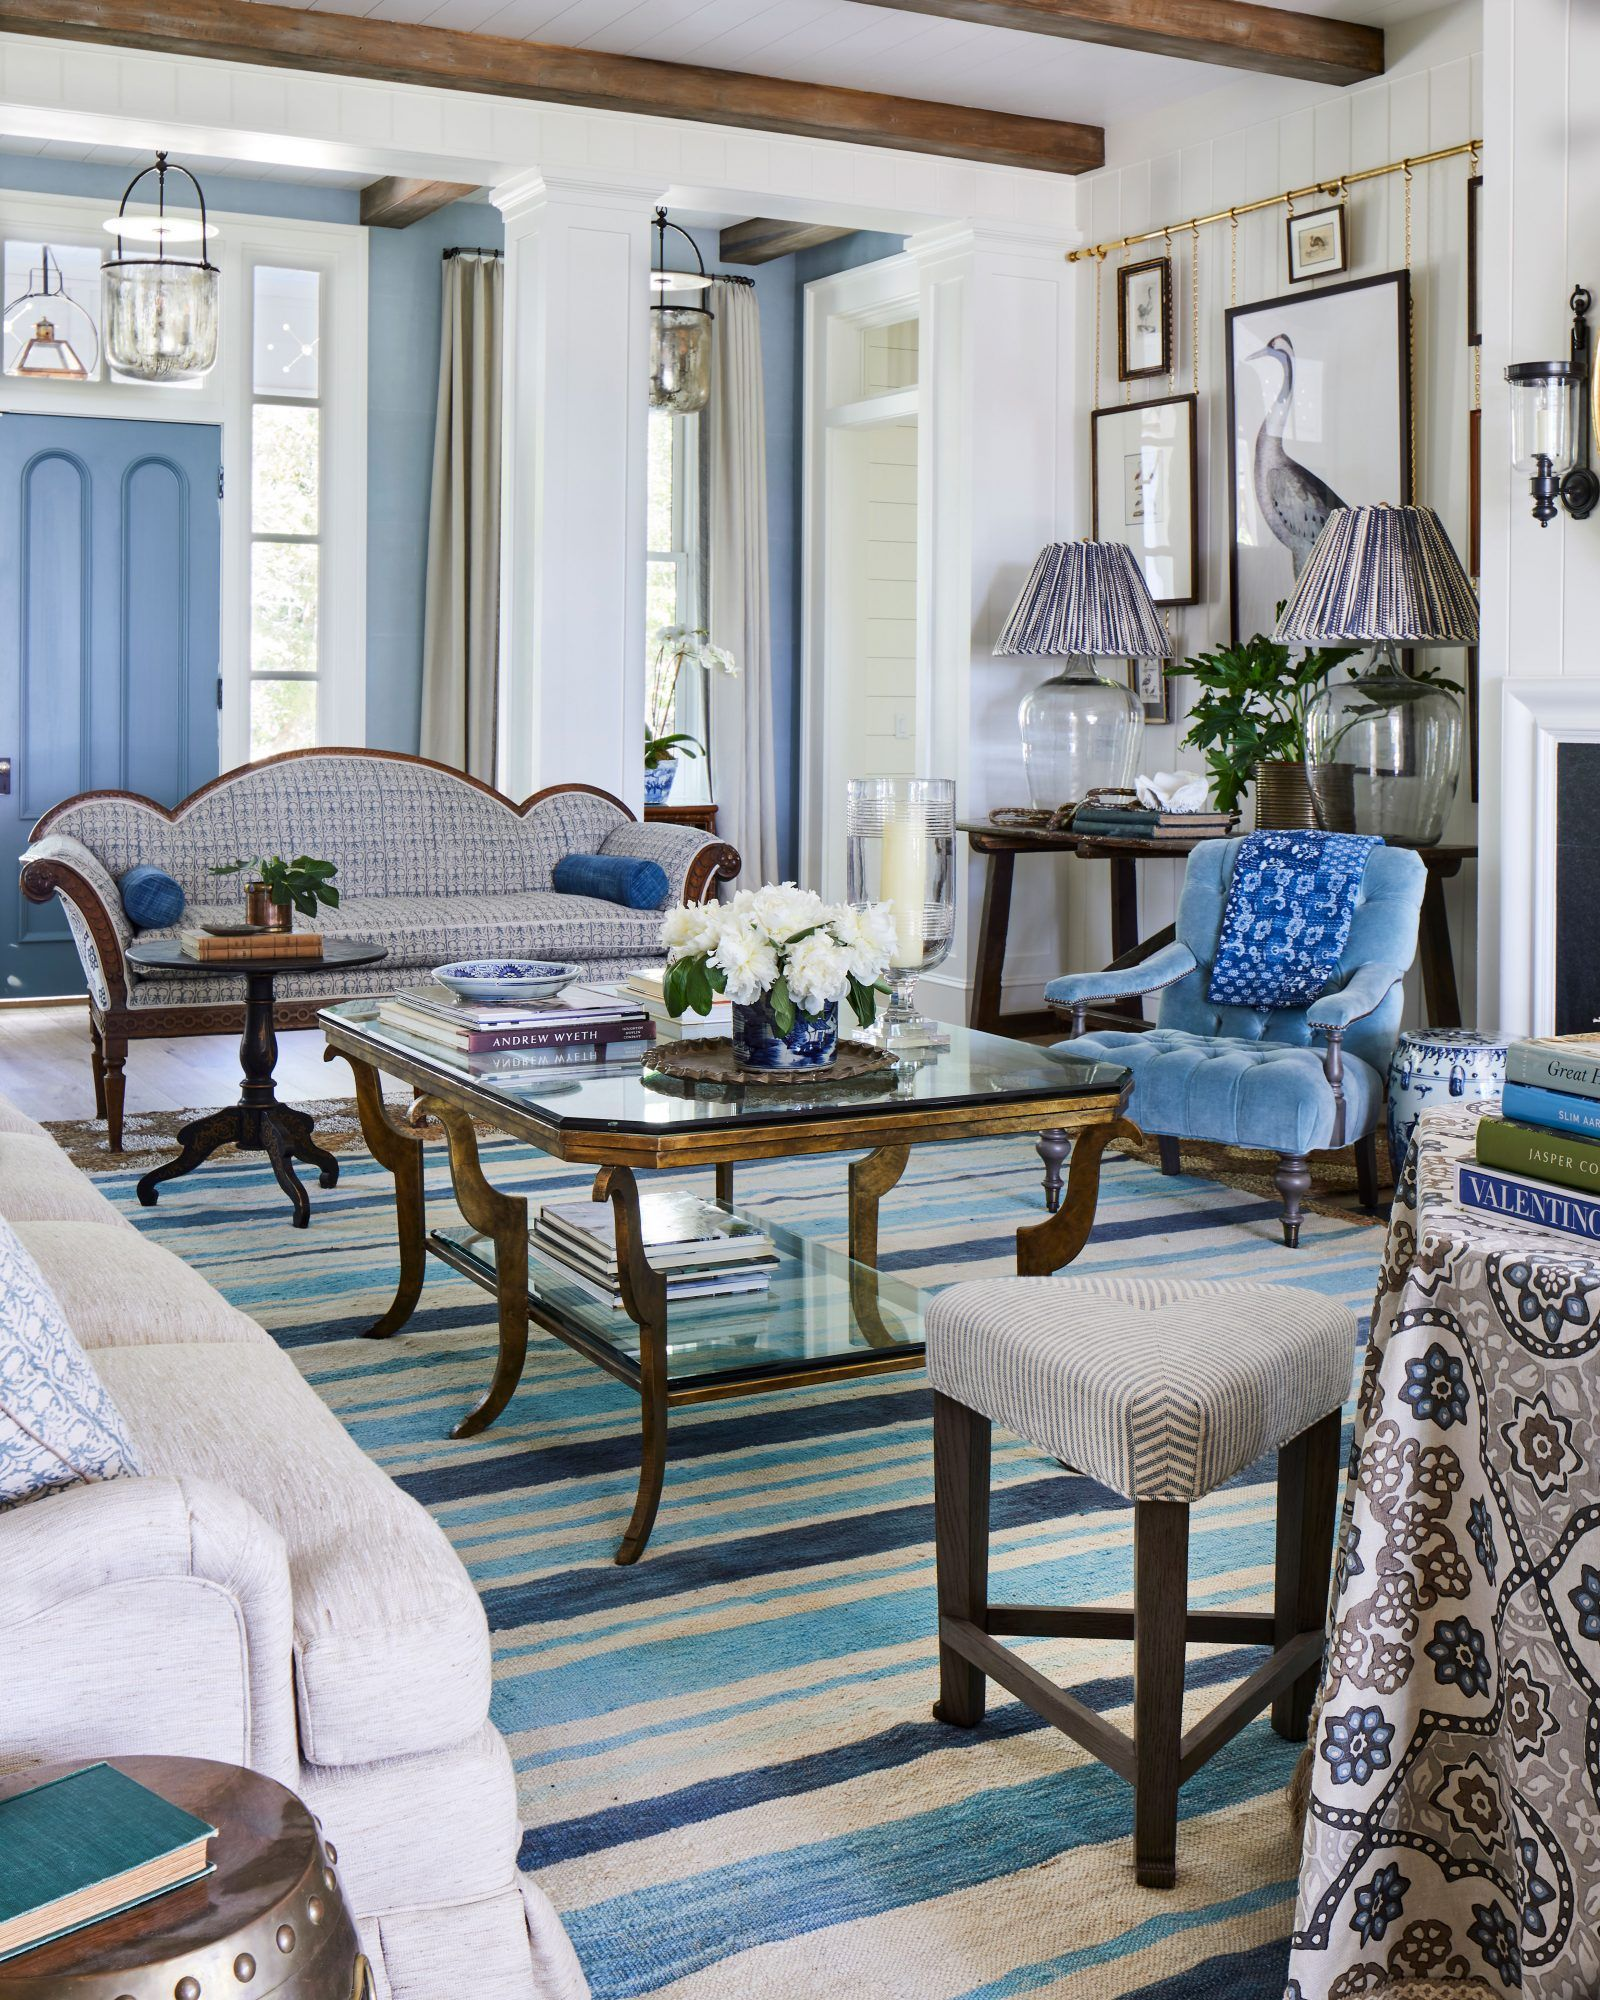 Tour The Ultimate Southern Dream House In 2020 Southern Living